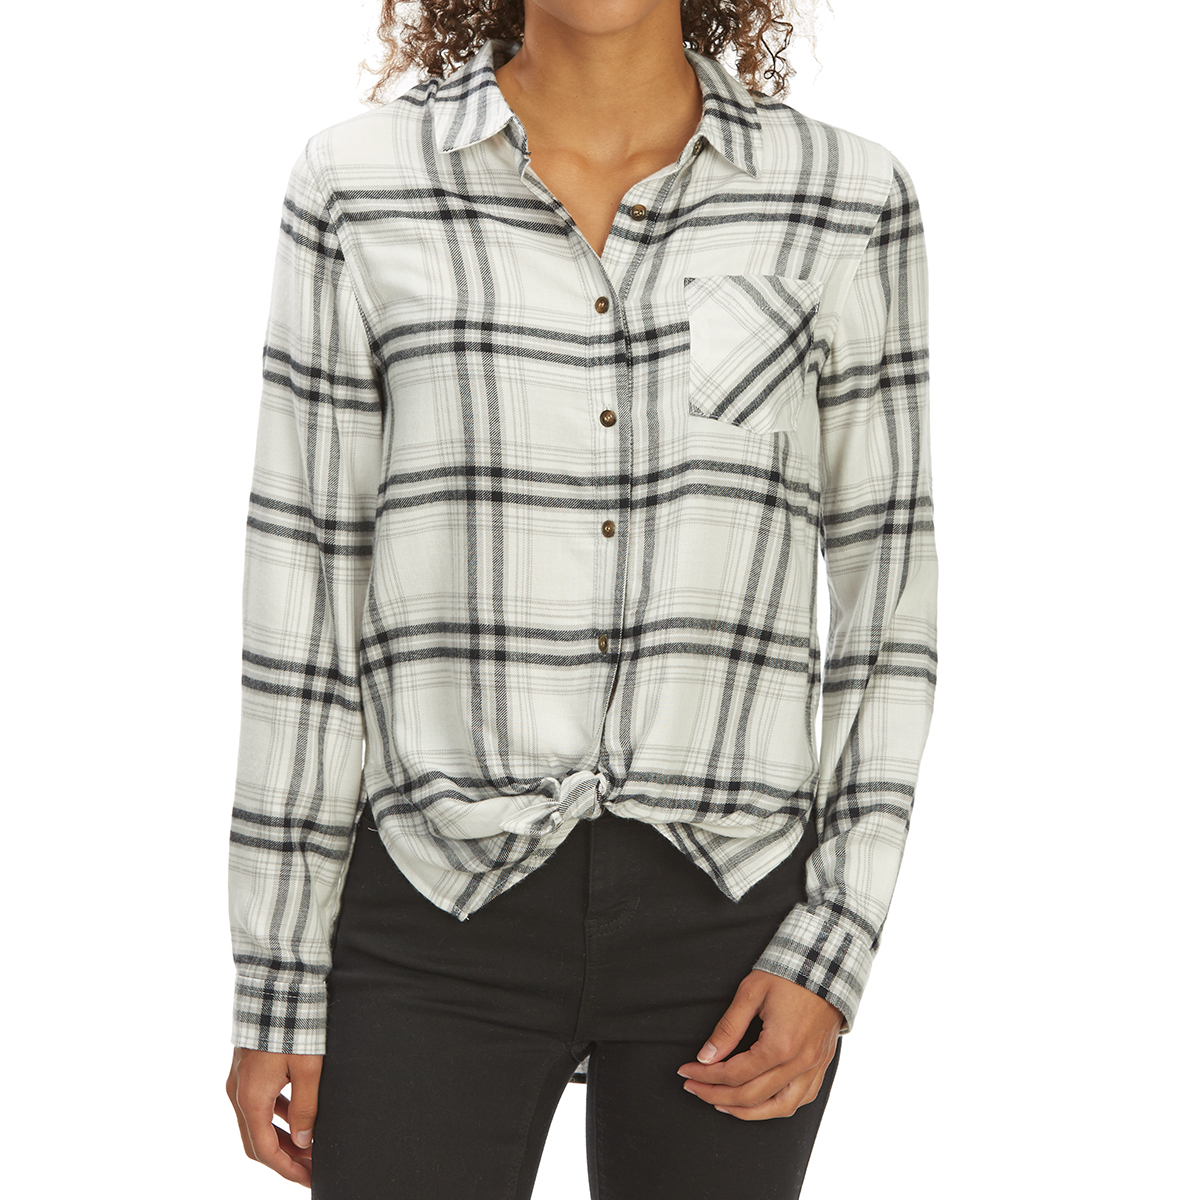 Pink Rose Juniors' Tie-Front Brushed Plaid Long-Sleeve Flannel Shirt - White, S